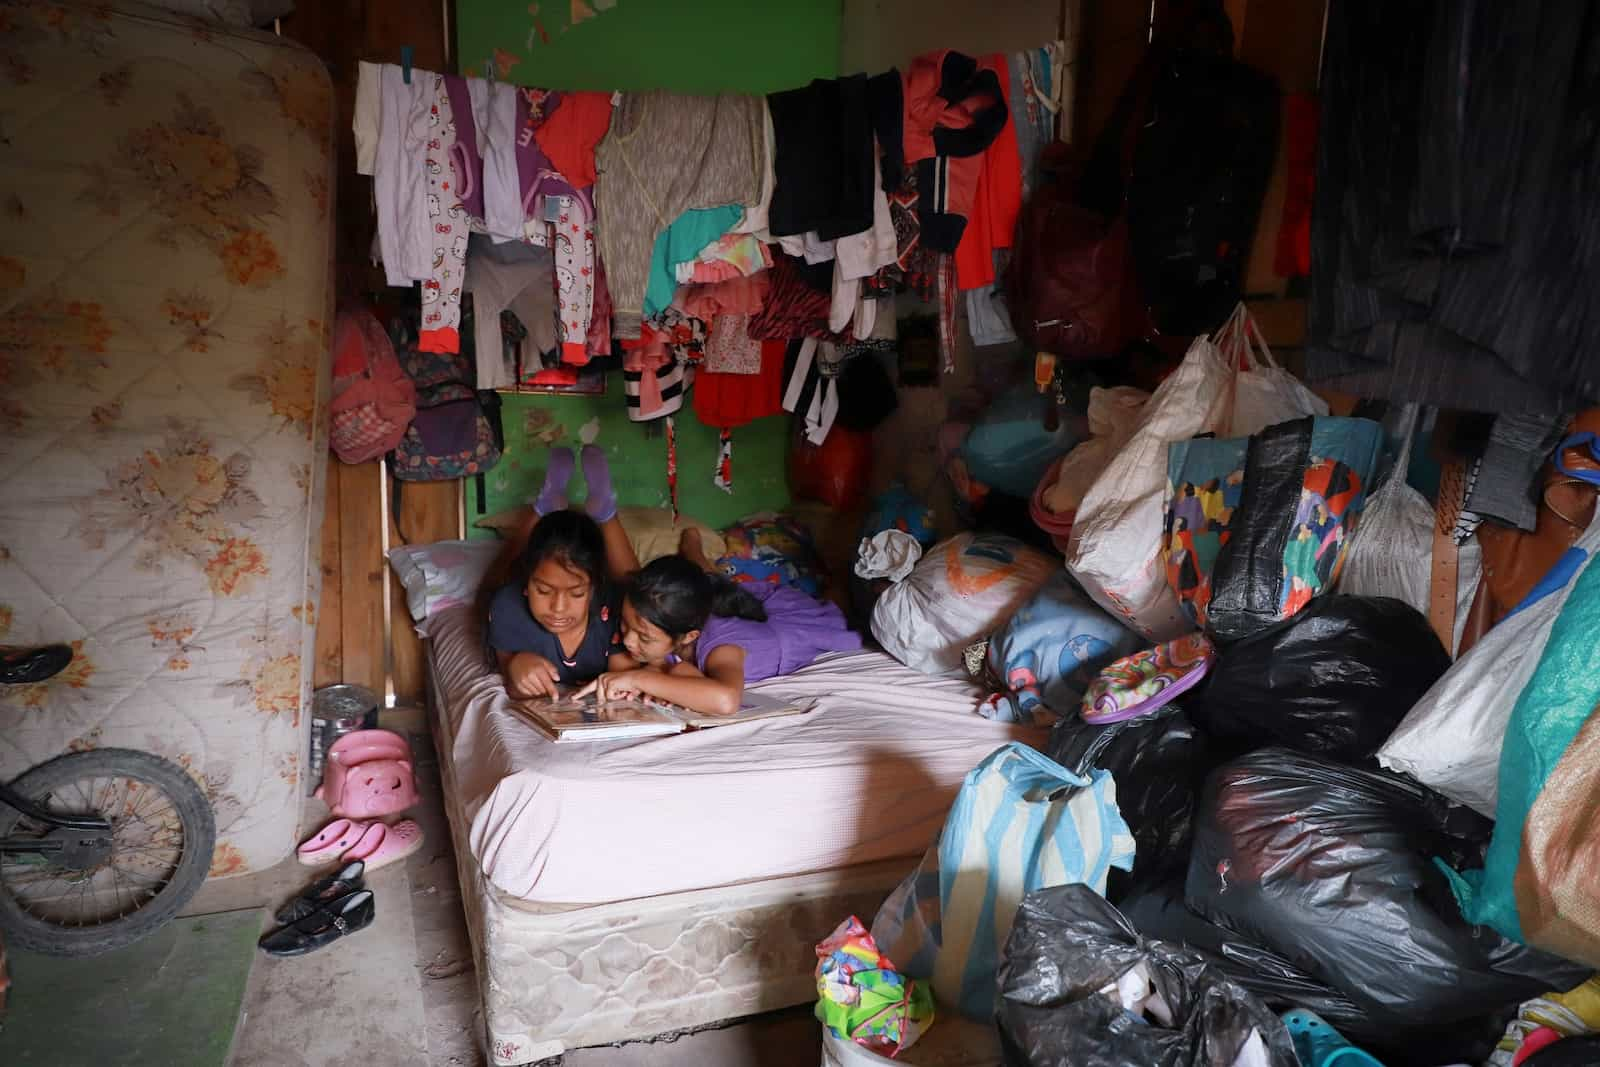 Two girls lie in a bed in a corner of a room, reading a Bible. A drying line of clothing hangs from teh ceiling and the walls and floors are covered in plasticbags, used for storage.